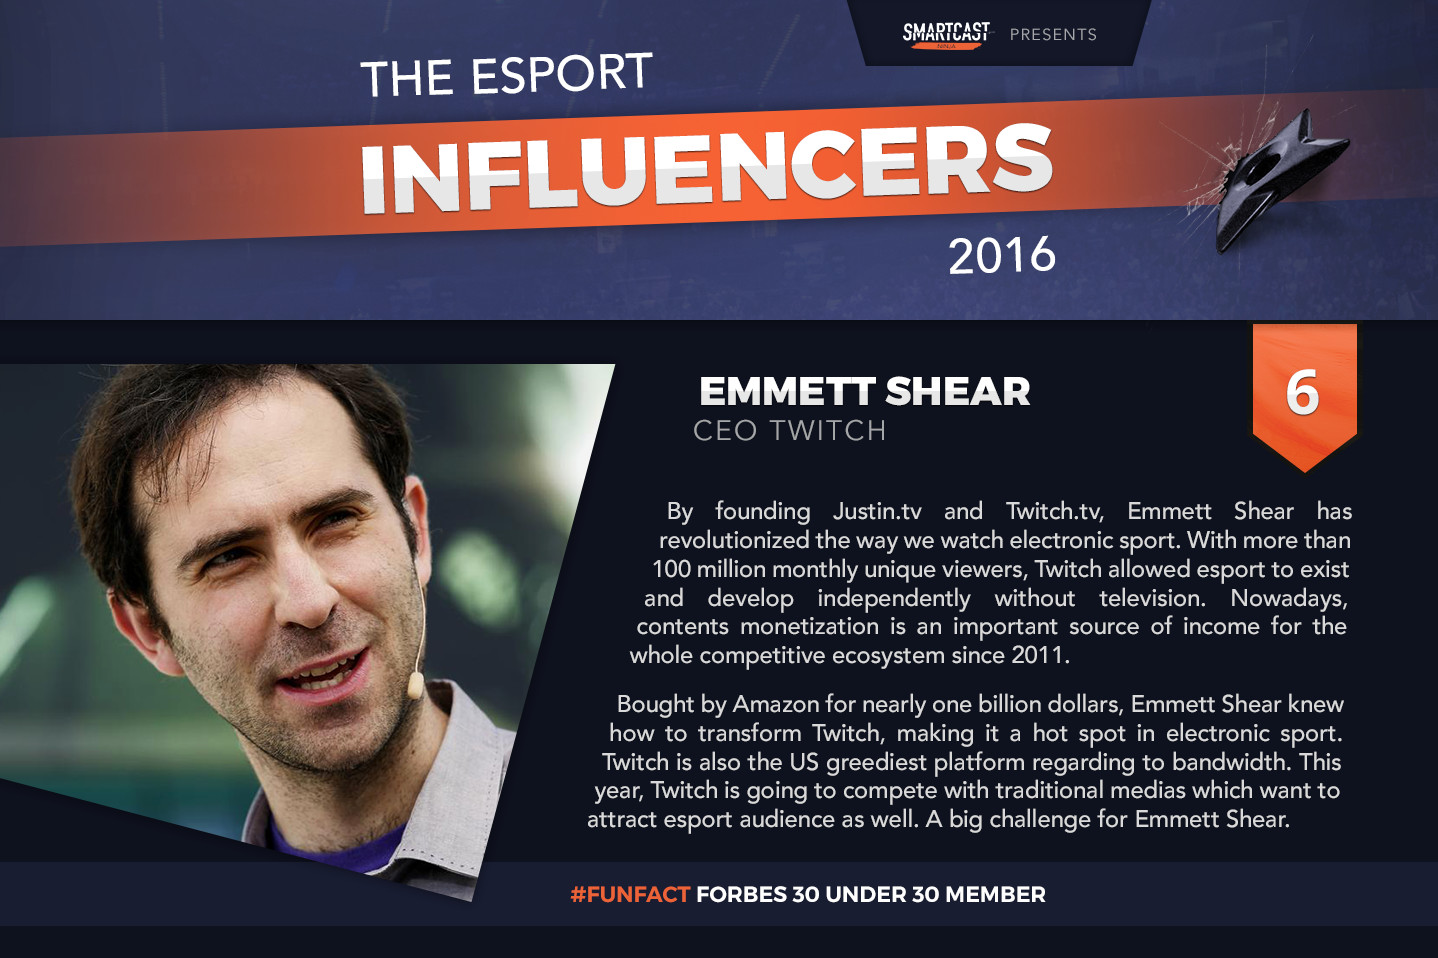 smartcast-influencer-esport-6-emmett_shear-en